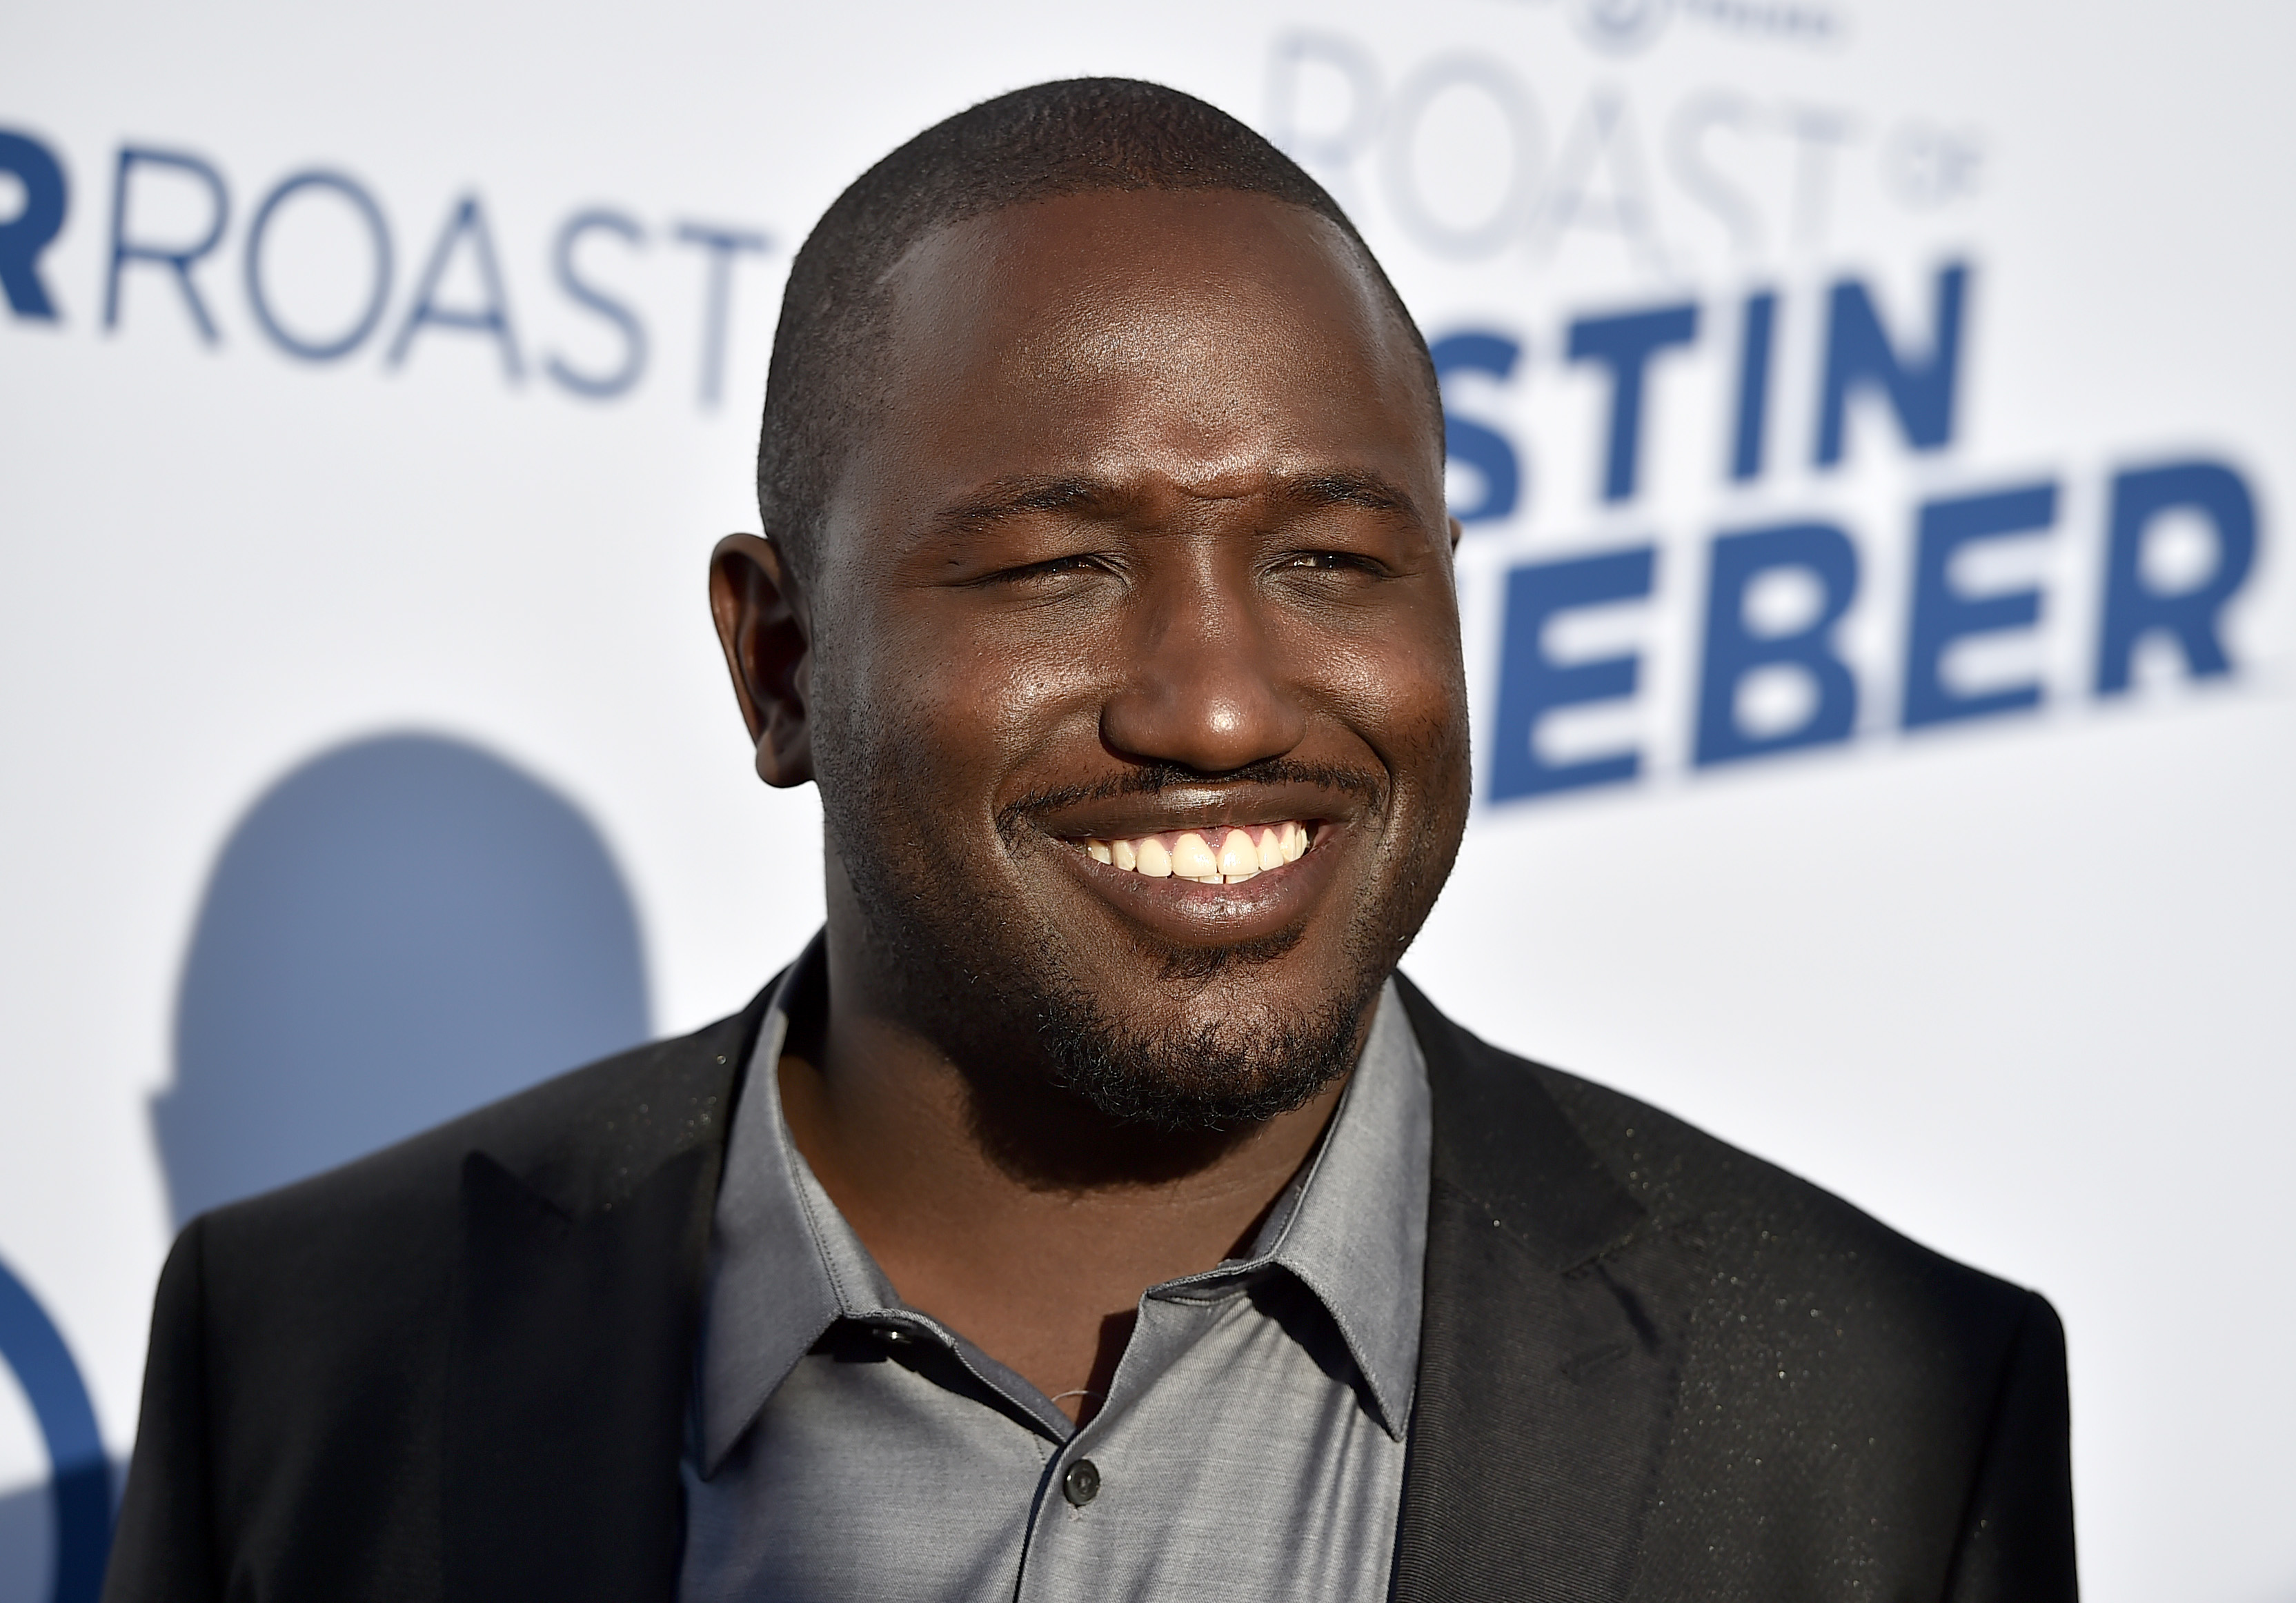 Hannibal Buress at the Comedy Central Roast of Justin Bieber in March.